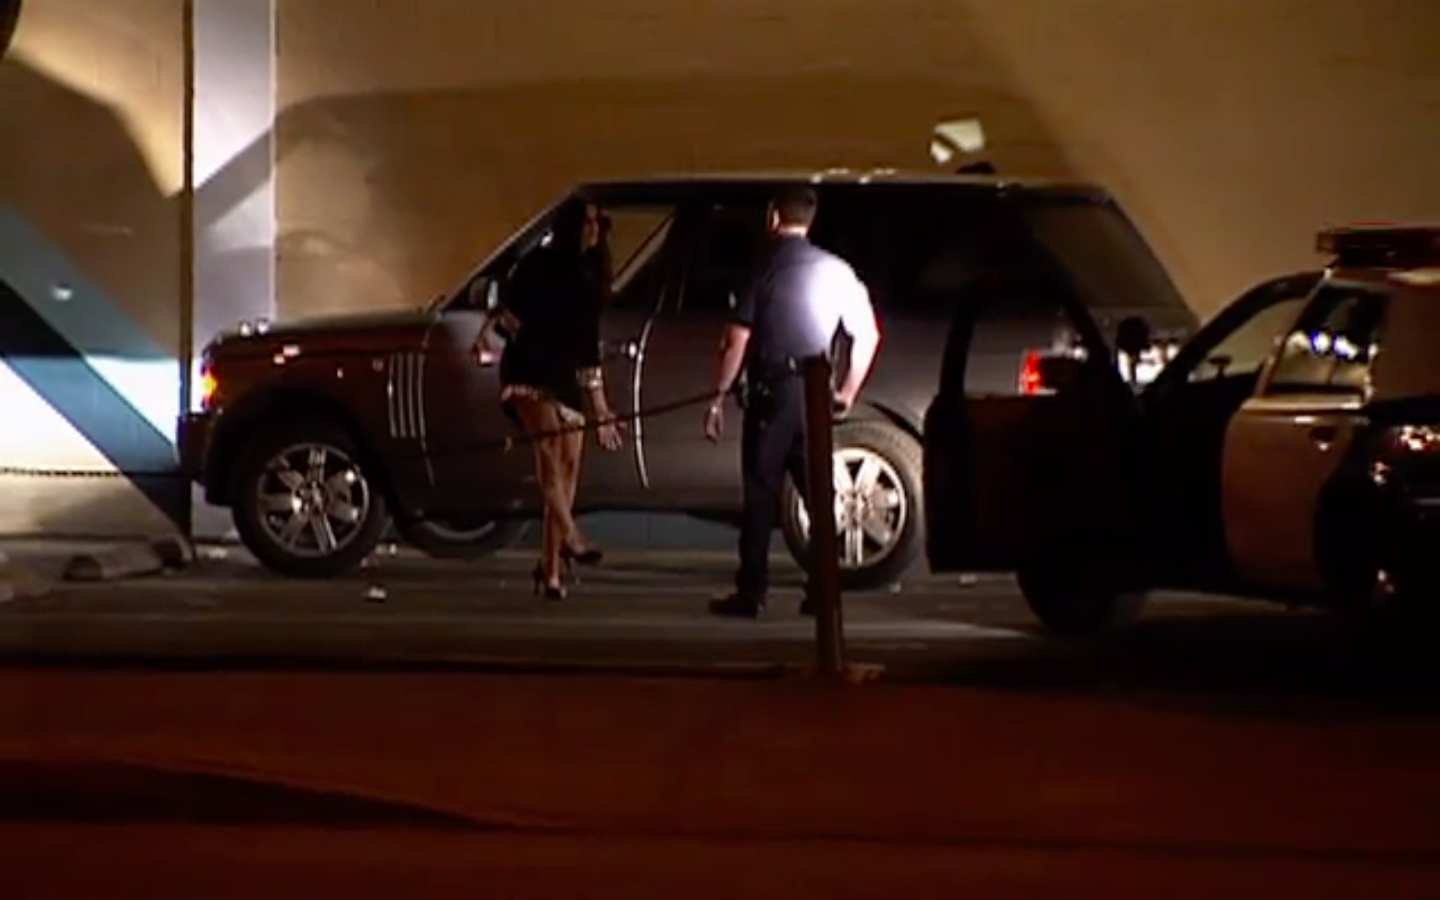 A screenshot shows Khloé walking in a line during a sobriety test outside of her car with a police officer